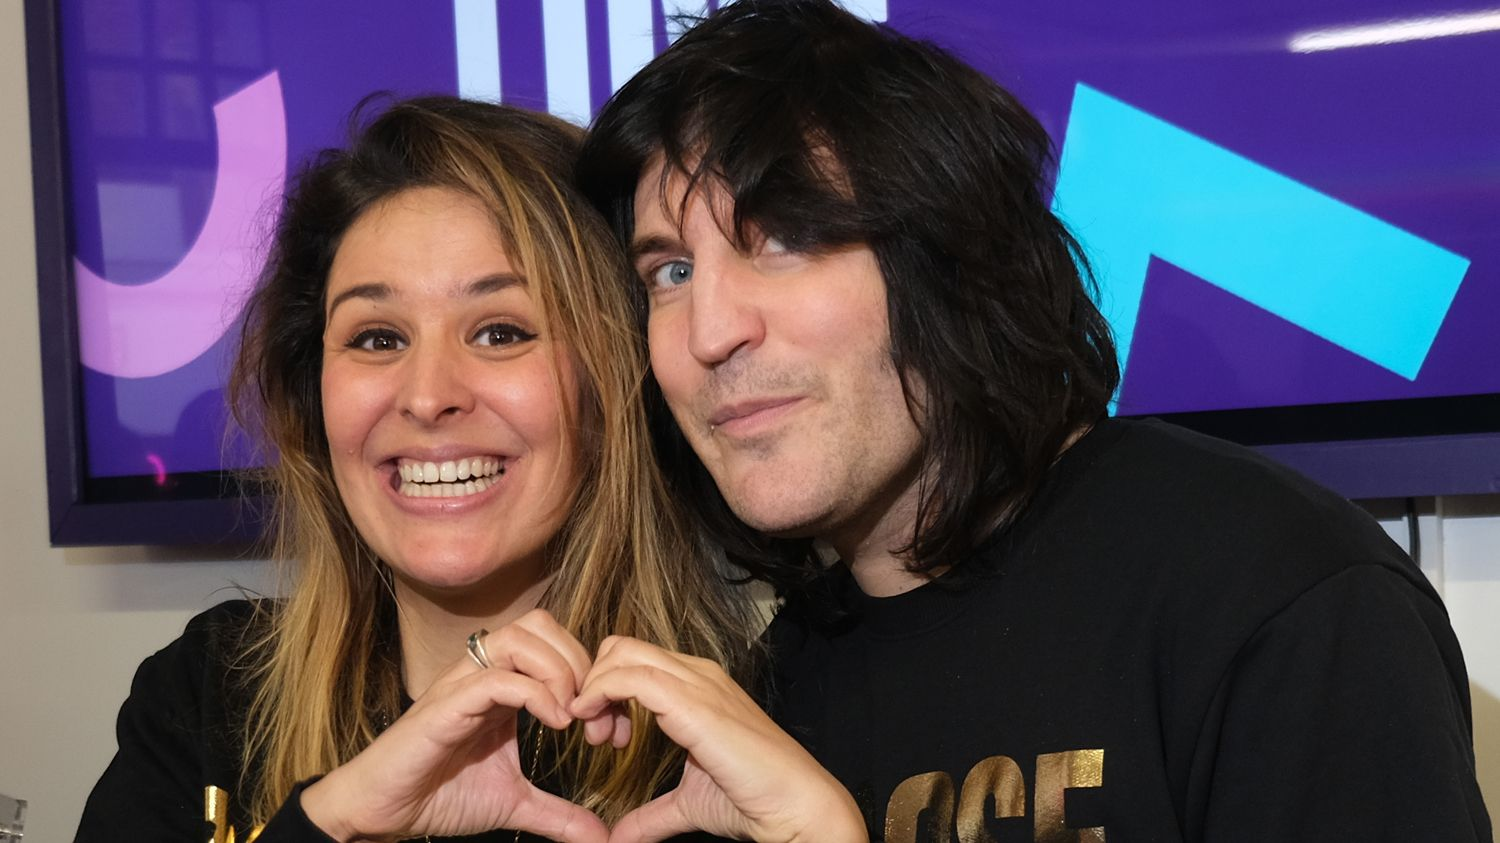 Bake Off host Noel Fielding becomes a dad for second time to baby girl